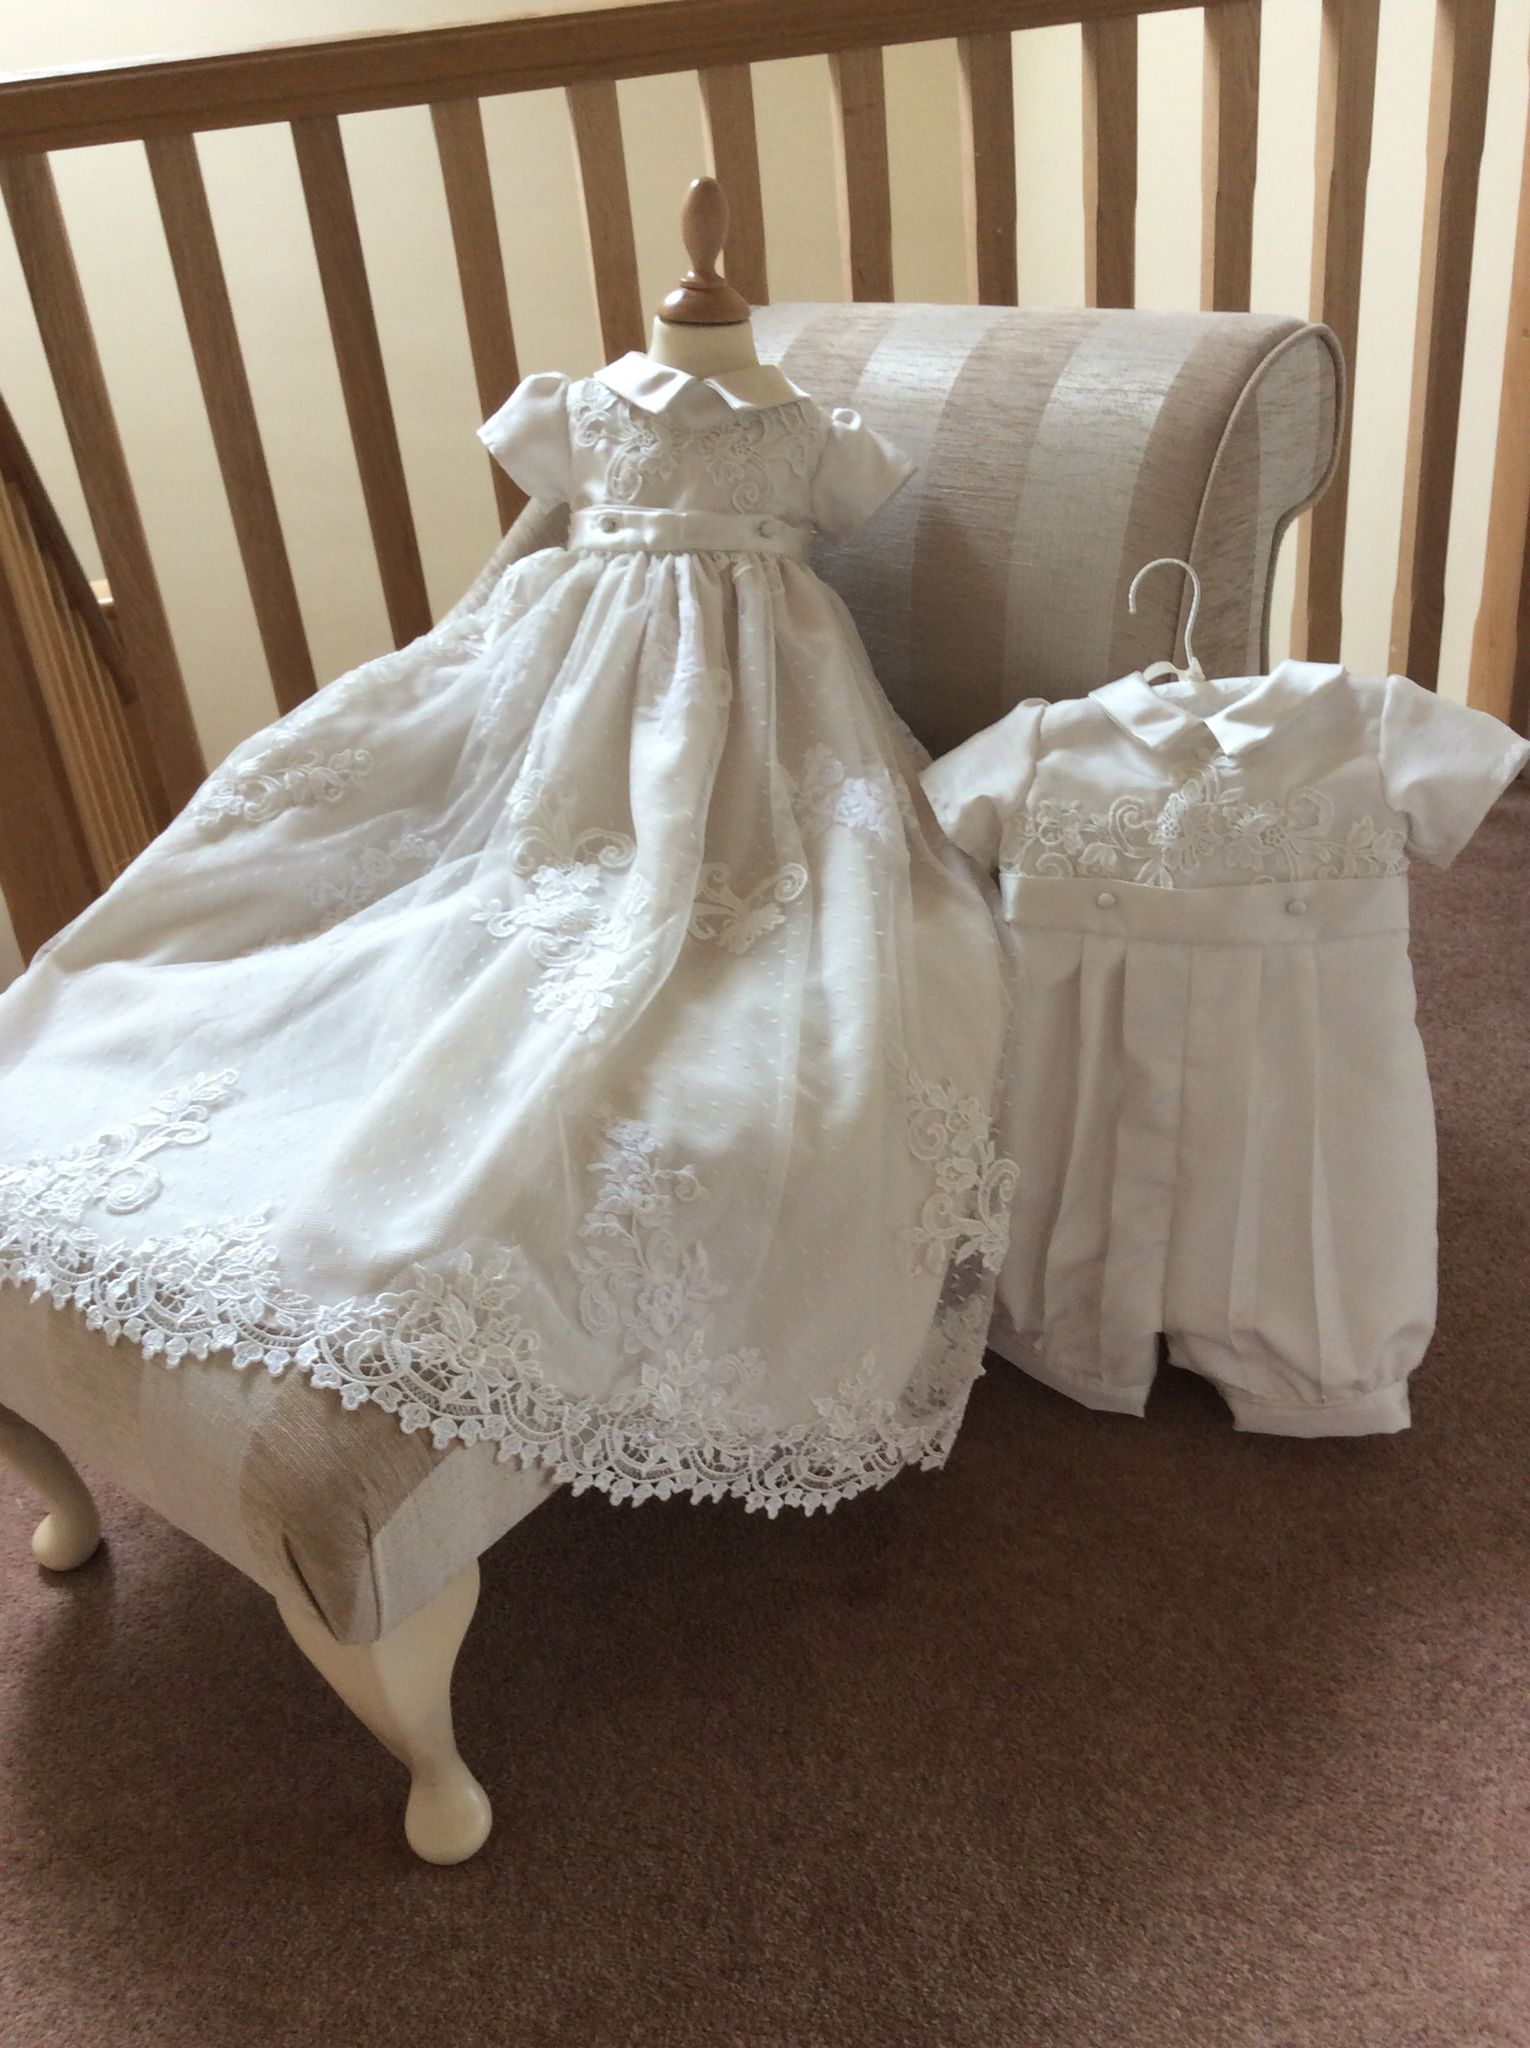 Wedding dress conversion romper suit and convertible gown created